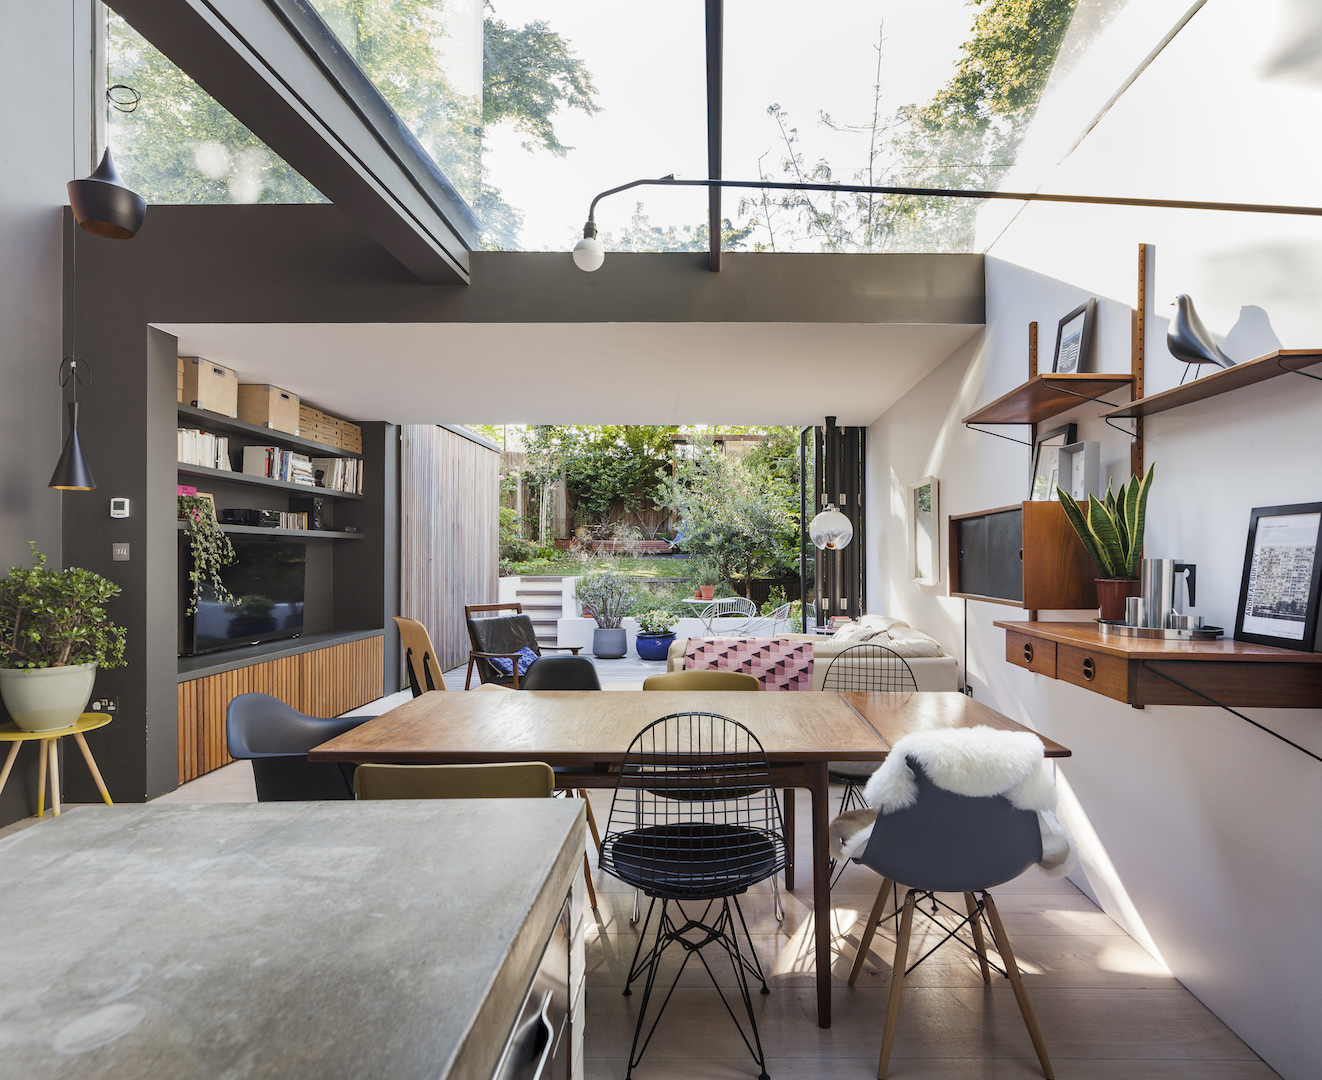 The Study House living room, dining room by Studio 30 Architects